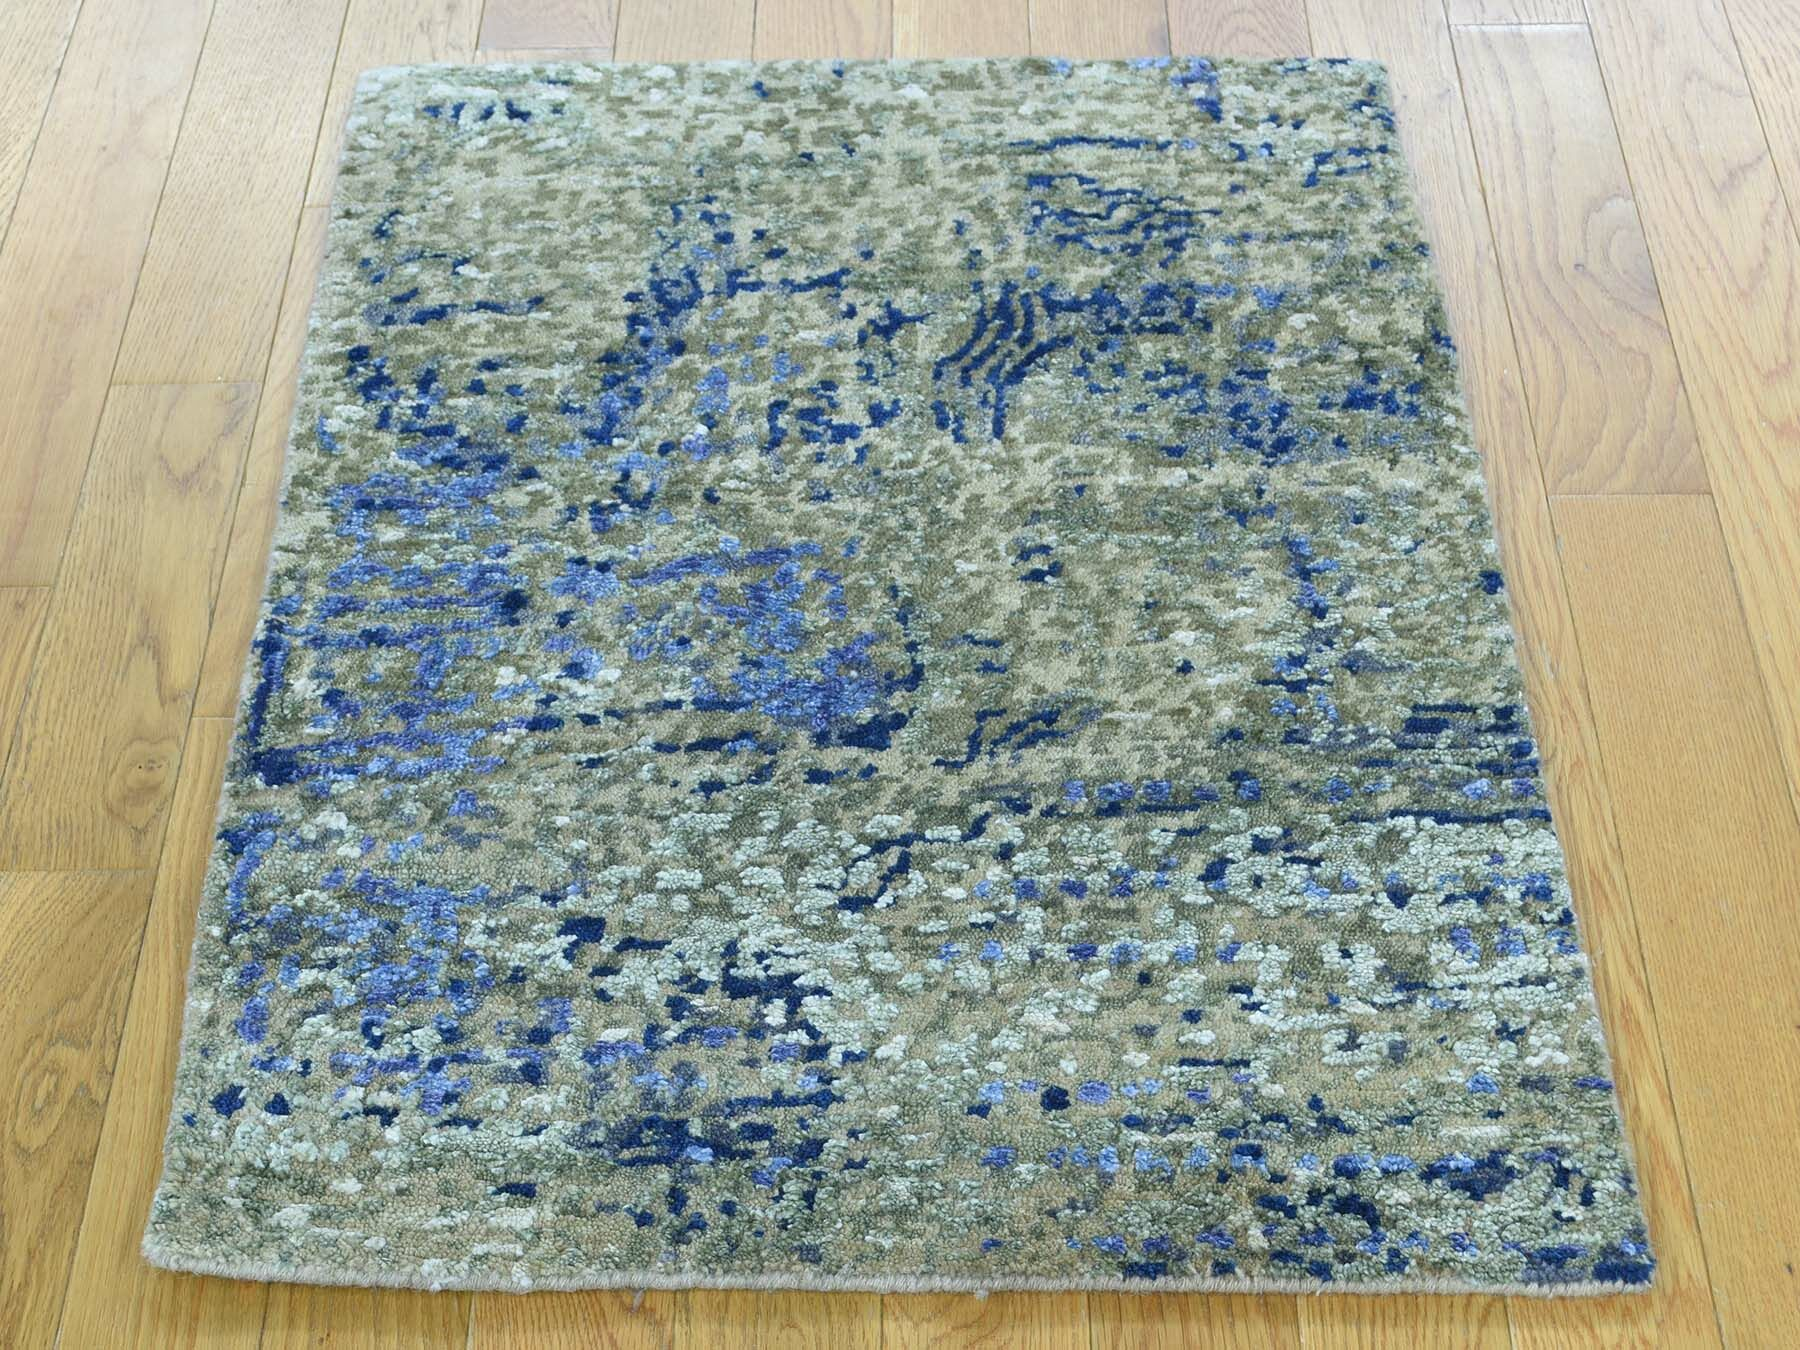 One-of-a-Kind Bowe Abstract Design Handwoven Wool/Silk Area Rug